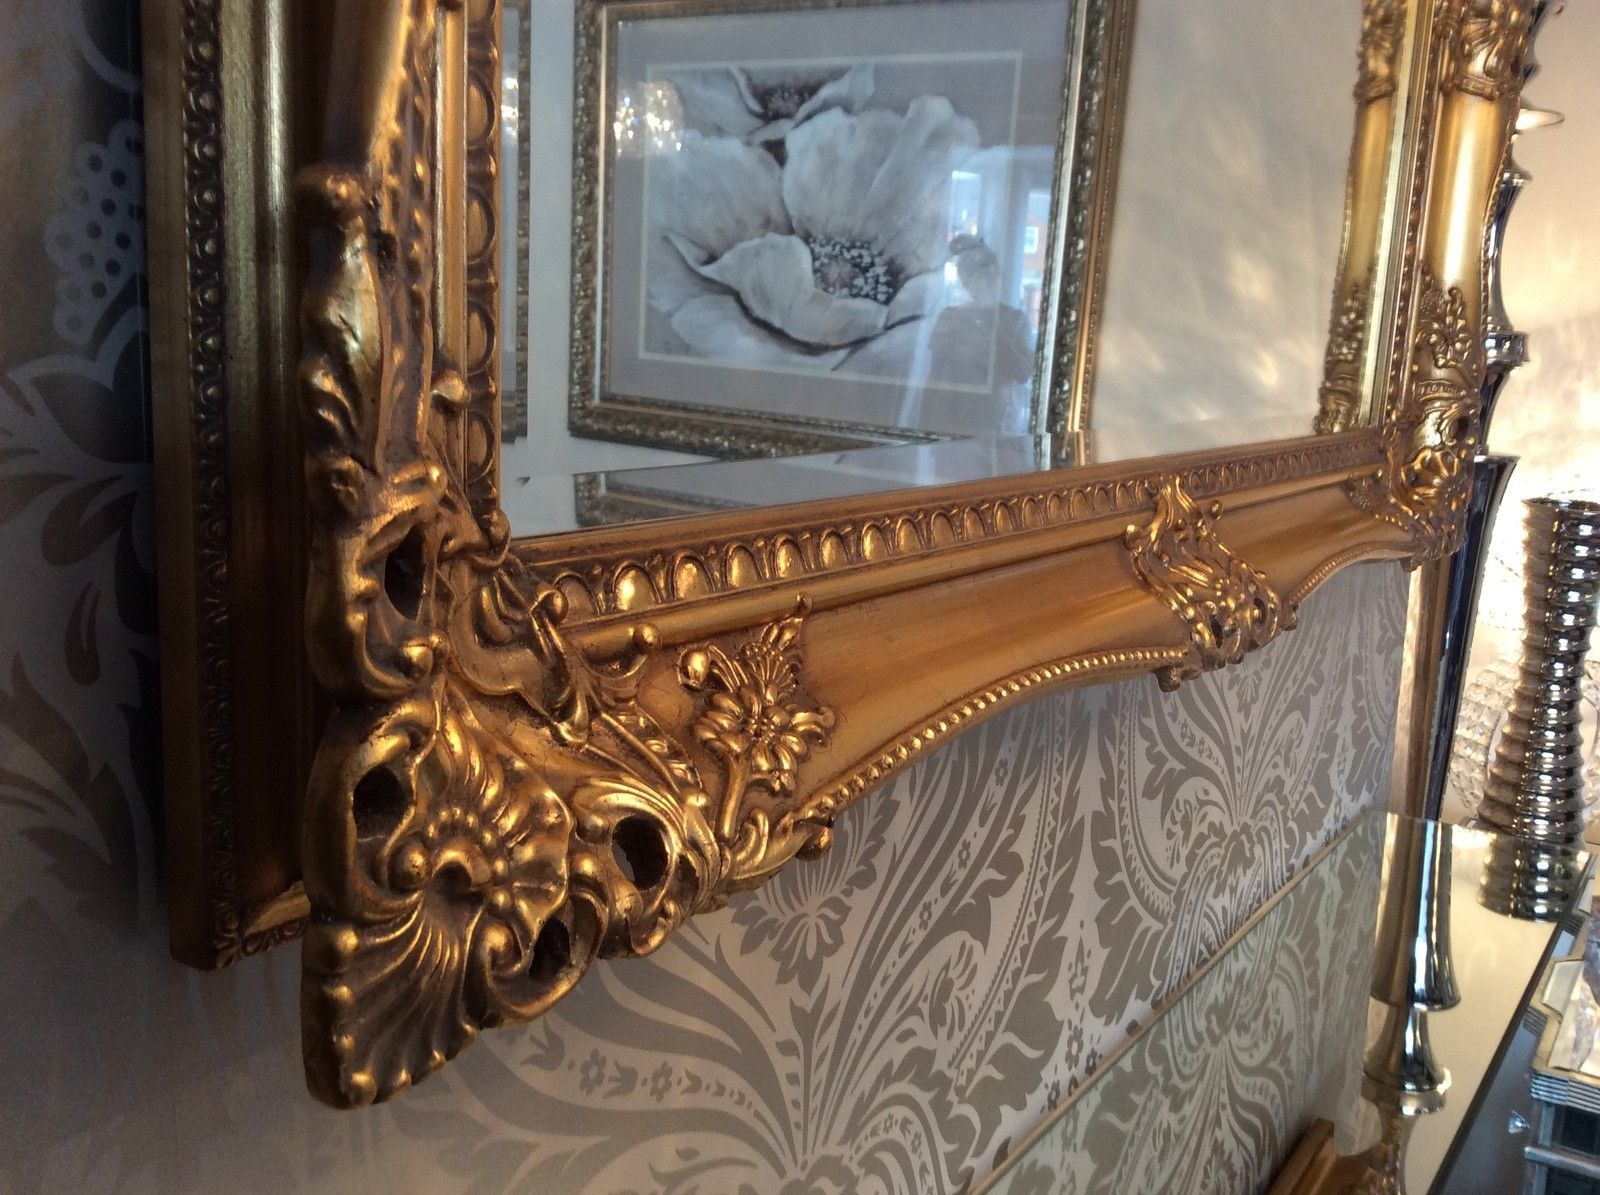 Large Antique Gold Shab Chic Ornate Decorative Wall Mirror Free Regarding Large Antique Gold Mirror (Image 8 of 15)